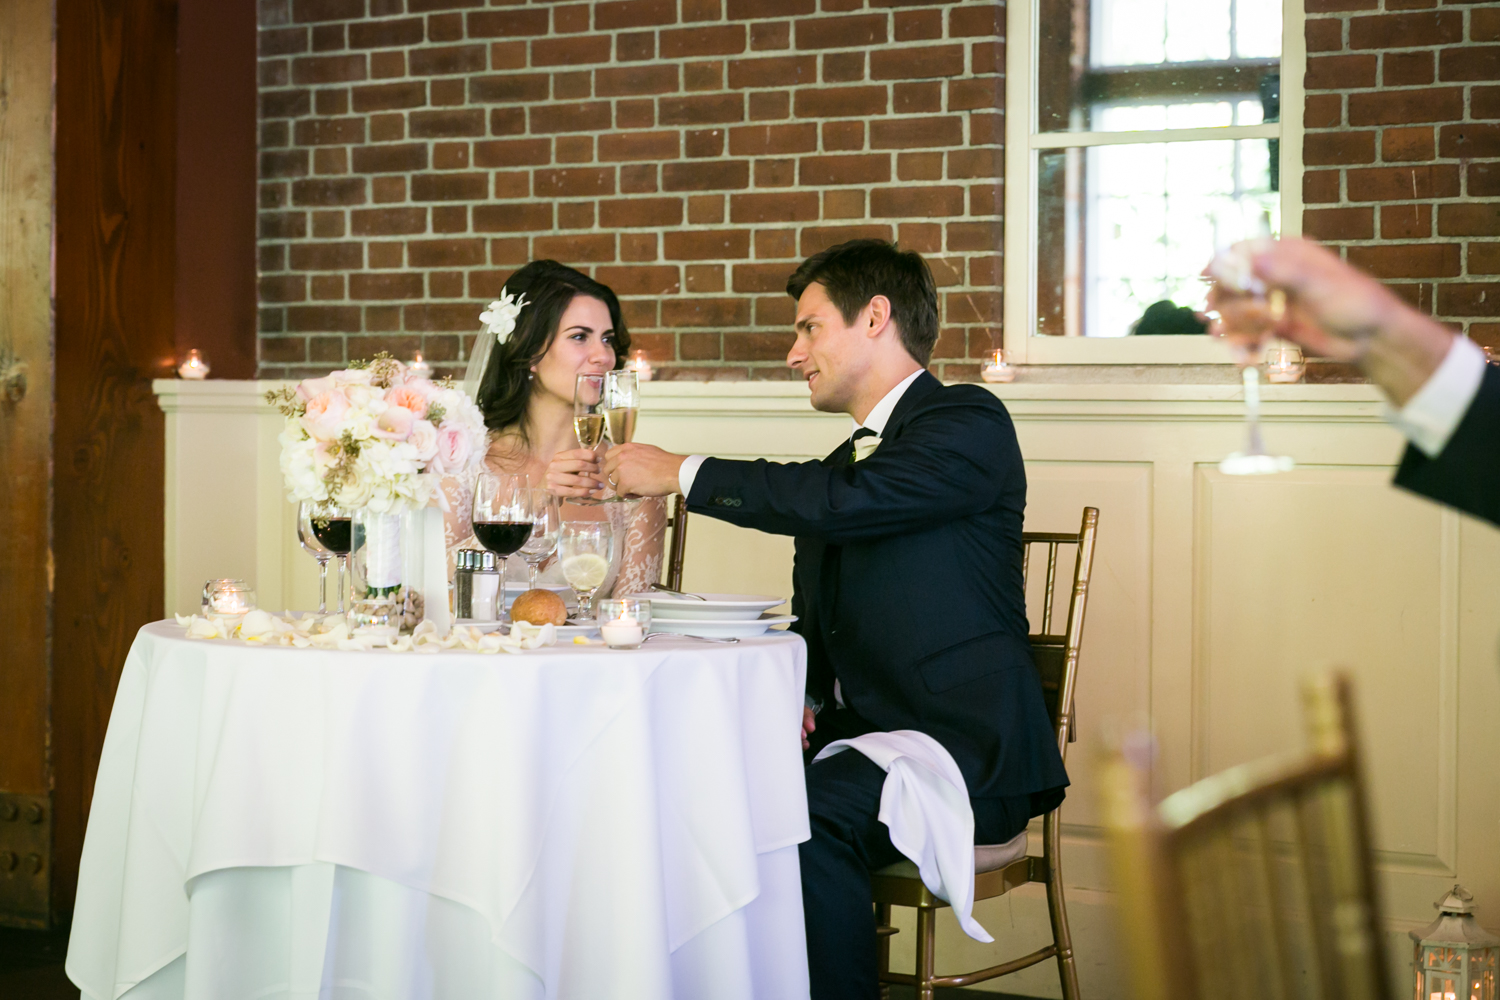 Bride and groom sitting at sweetheart table and toasting champagne glasses